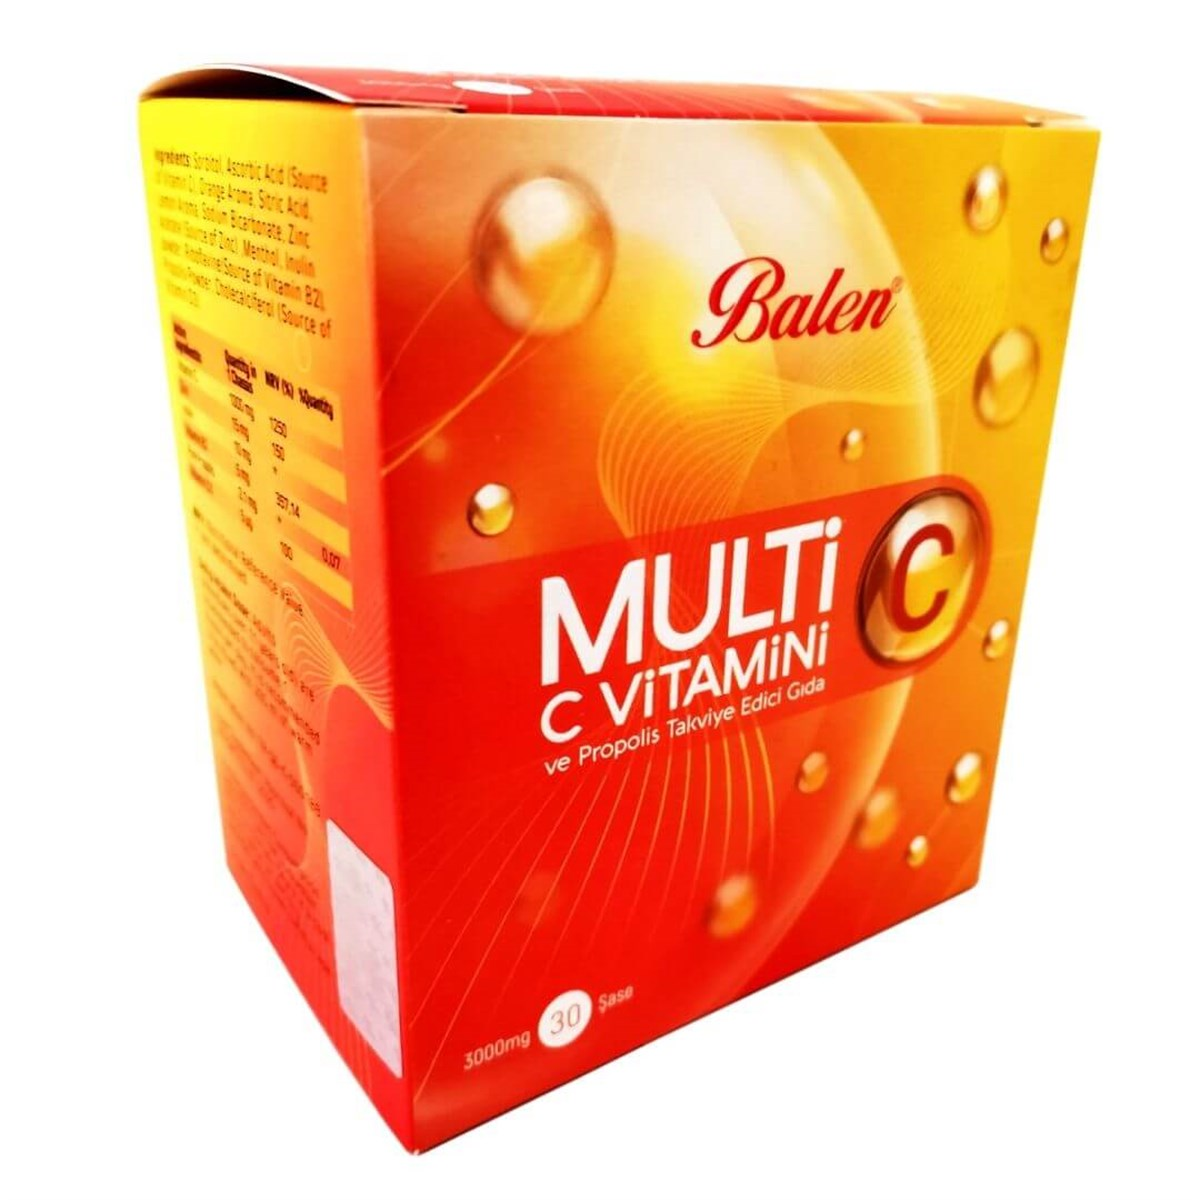 Balen Multi C Vitamini ve Propolis